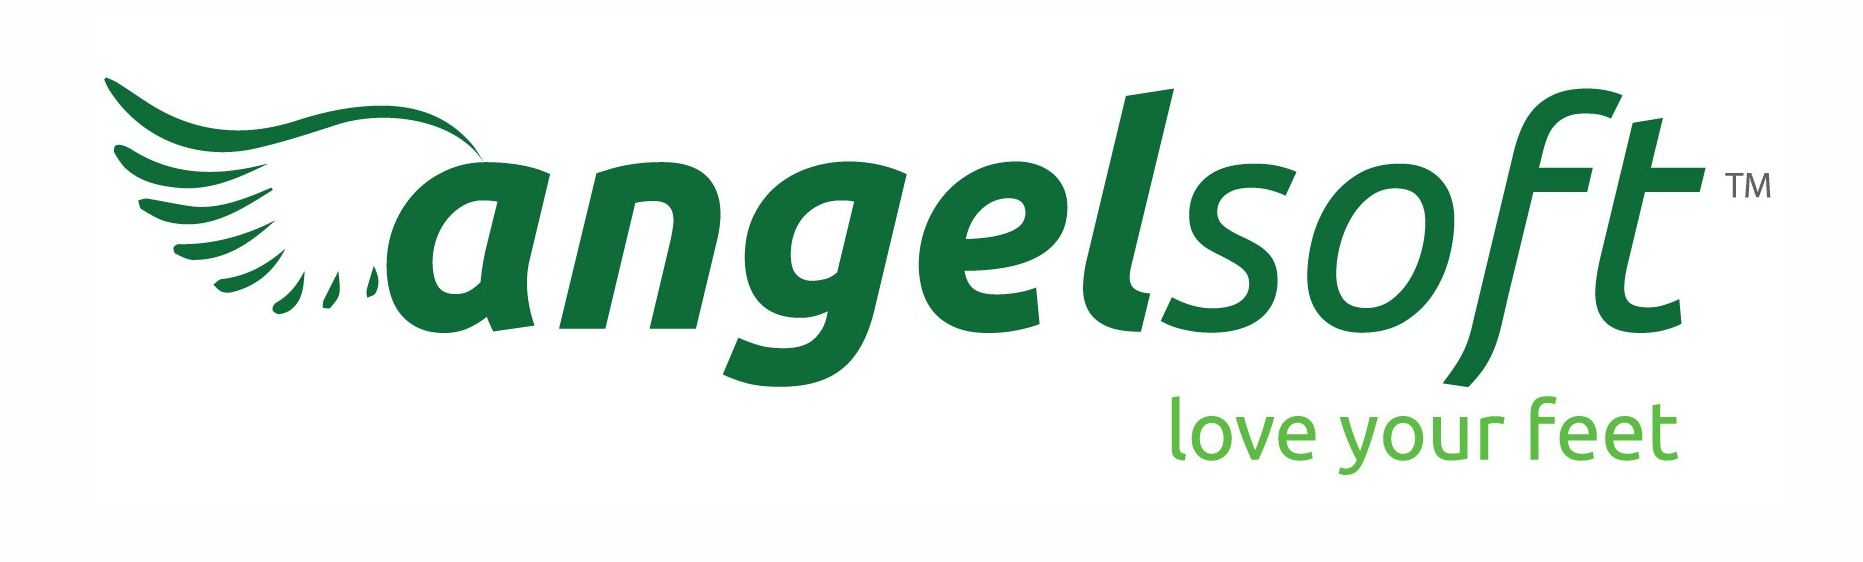 ANGEL SOFT- OFFICIAL LOGO